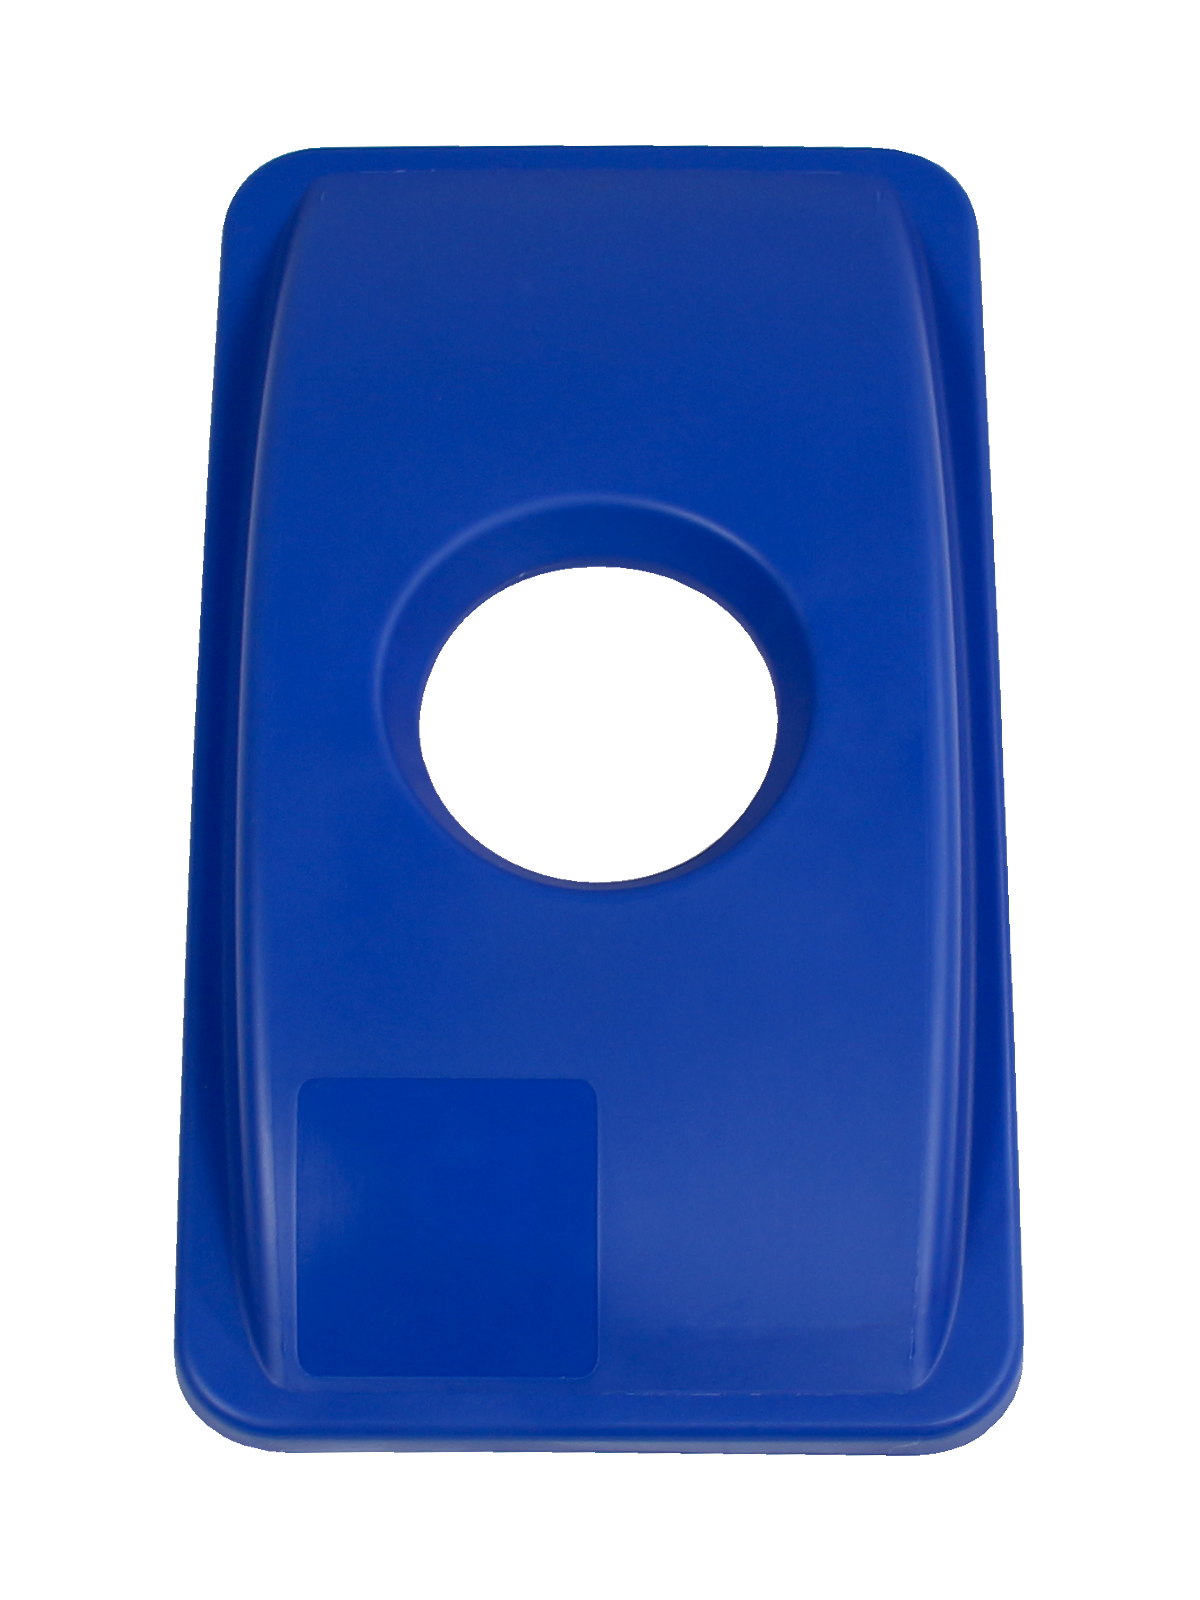 WASTE WATCHER - Single - Lid - Circle - Royal Blue